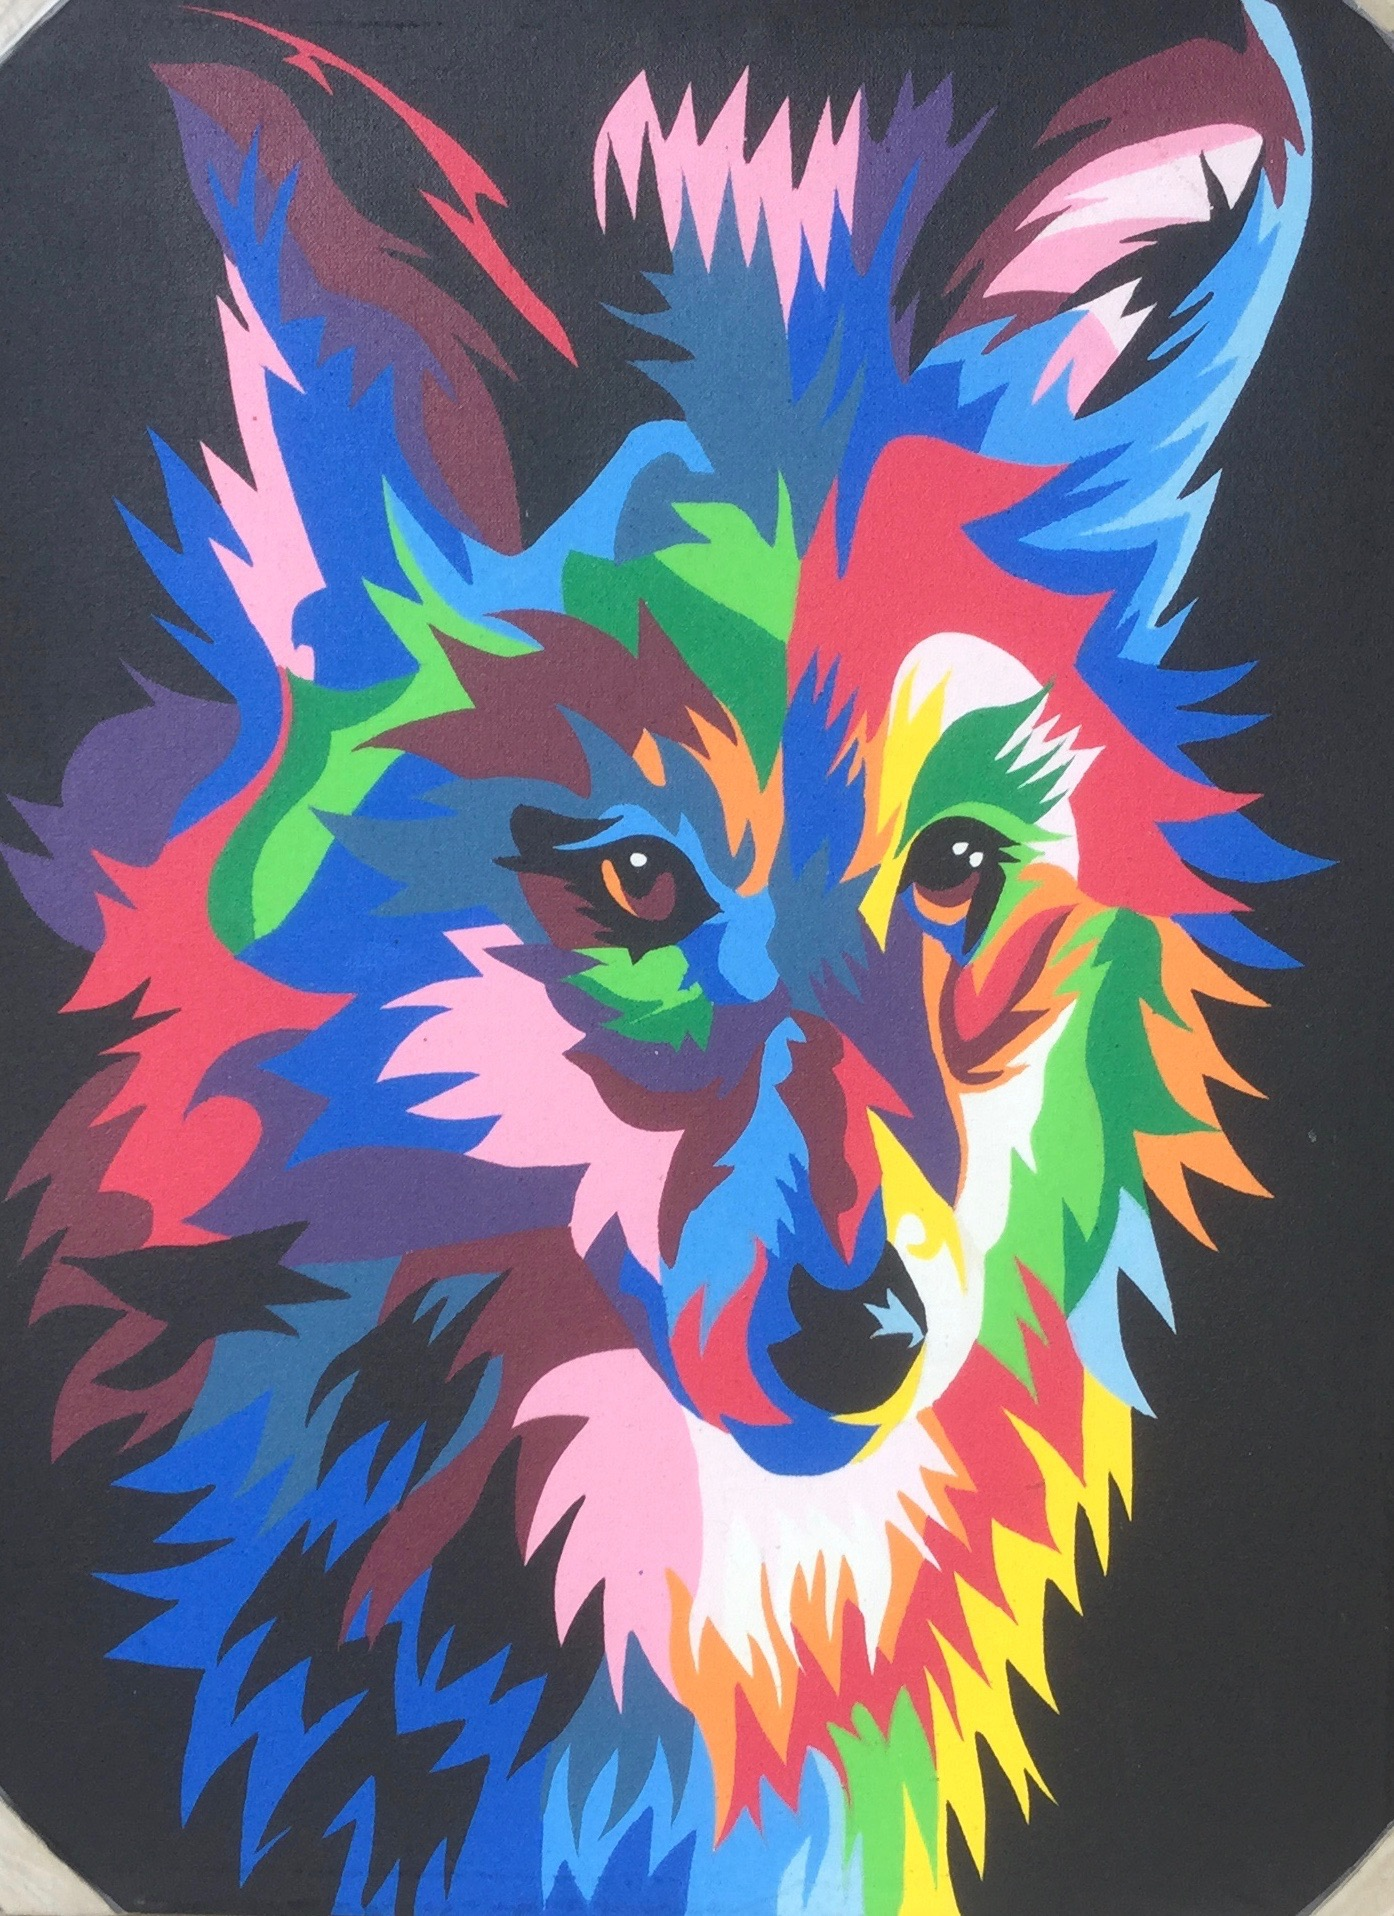 colorful animal painting 7090cap003 公式 goes windy dream